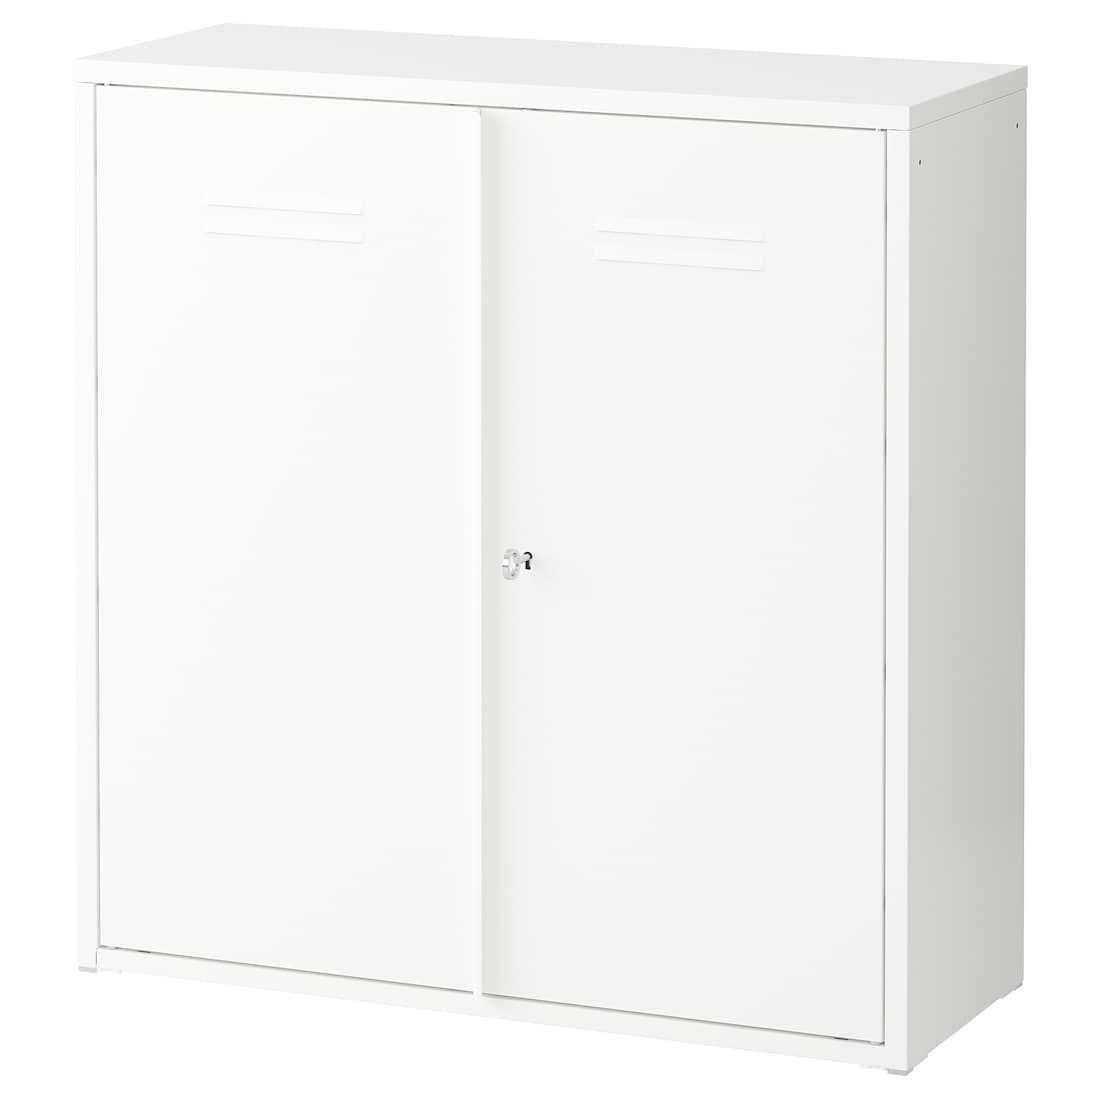 """IVAR Cabinet With Doors - White 31 1/2x32 5/8 """""""